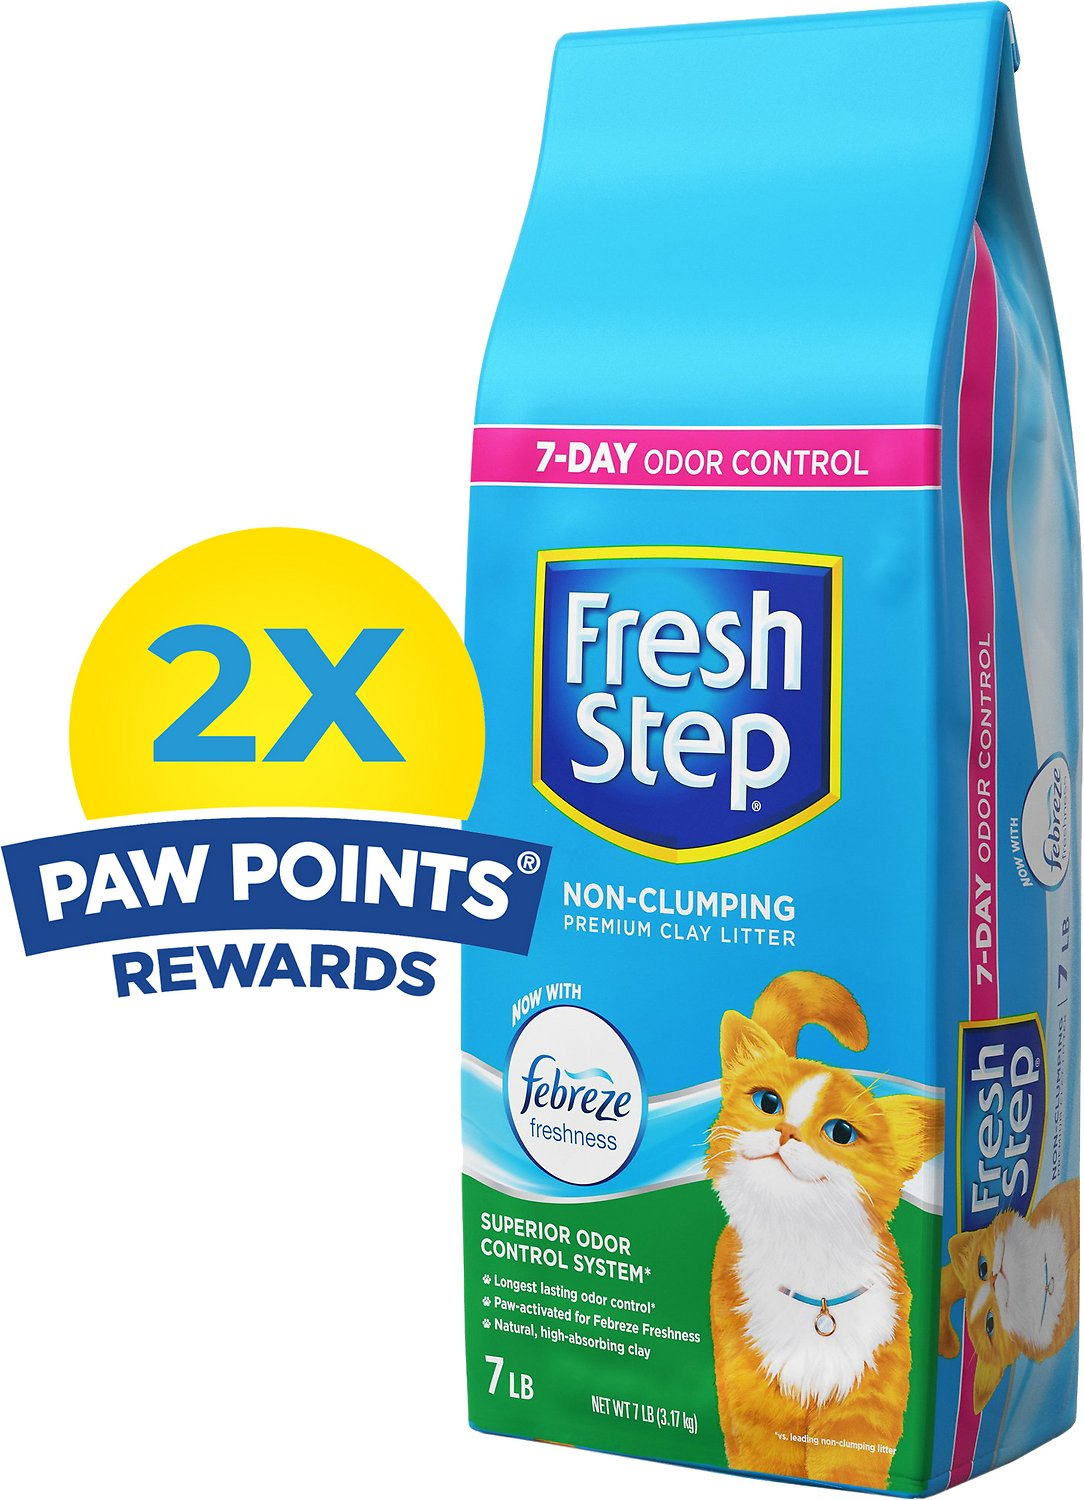 Fresh Step Scented Non-Clumping Clay Cat Litter with Febreeze Image